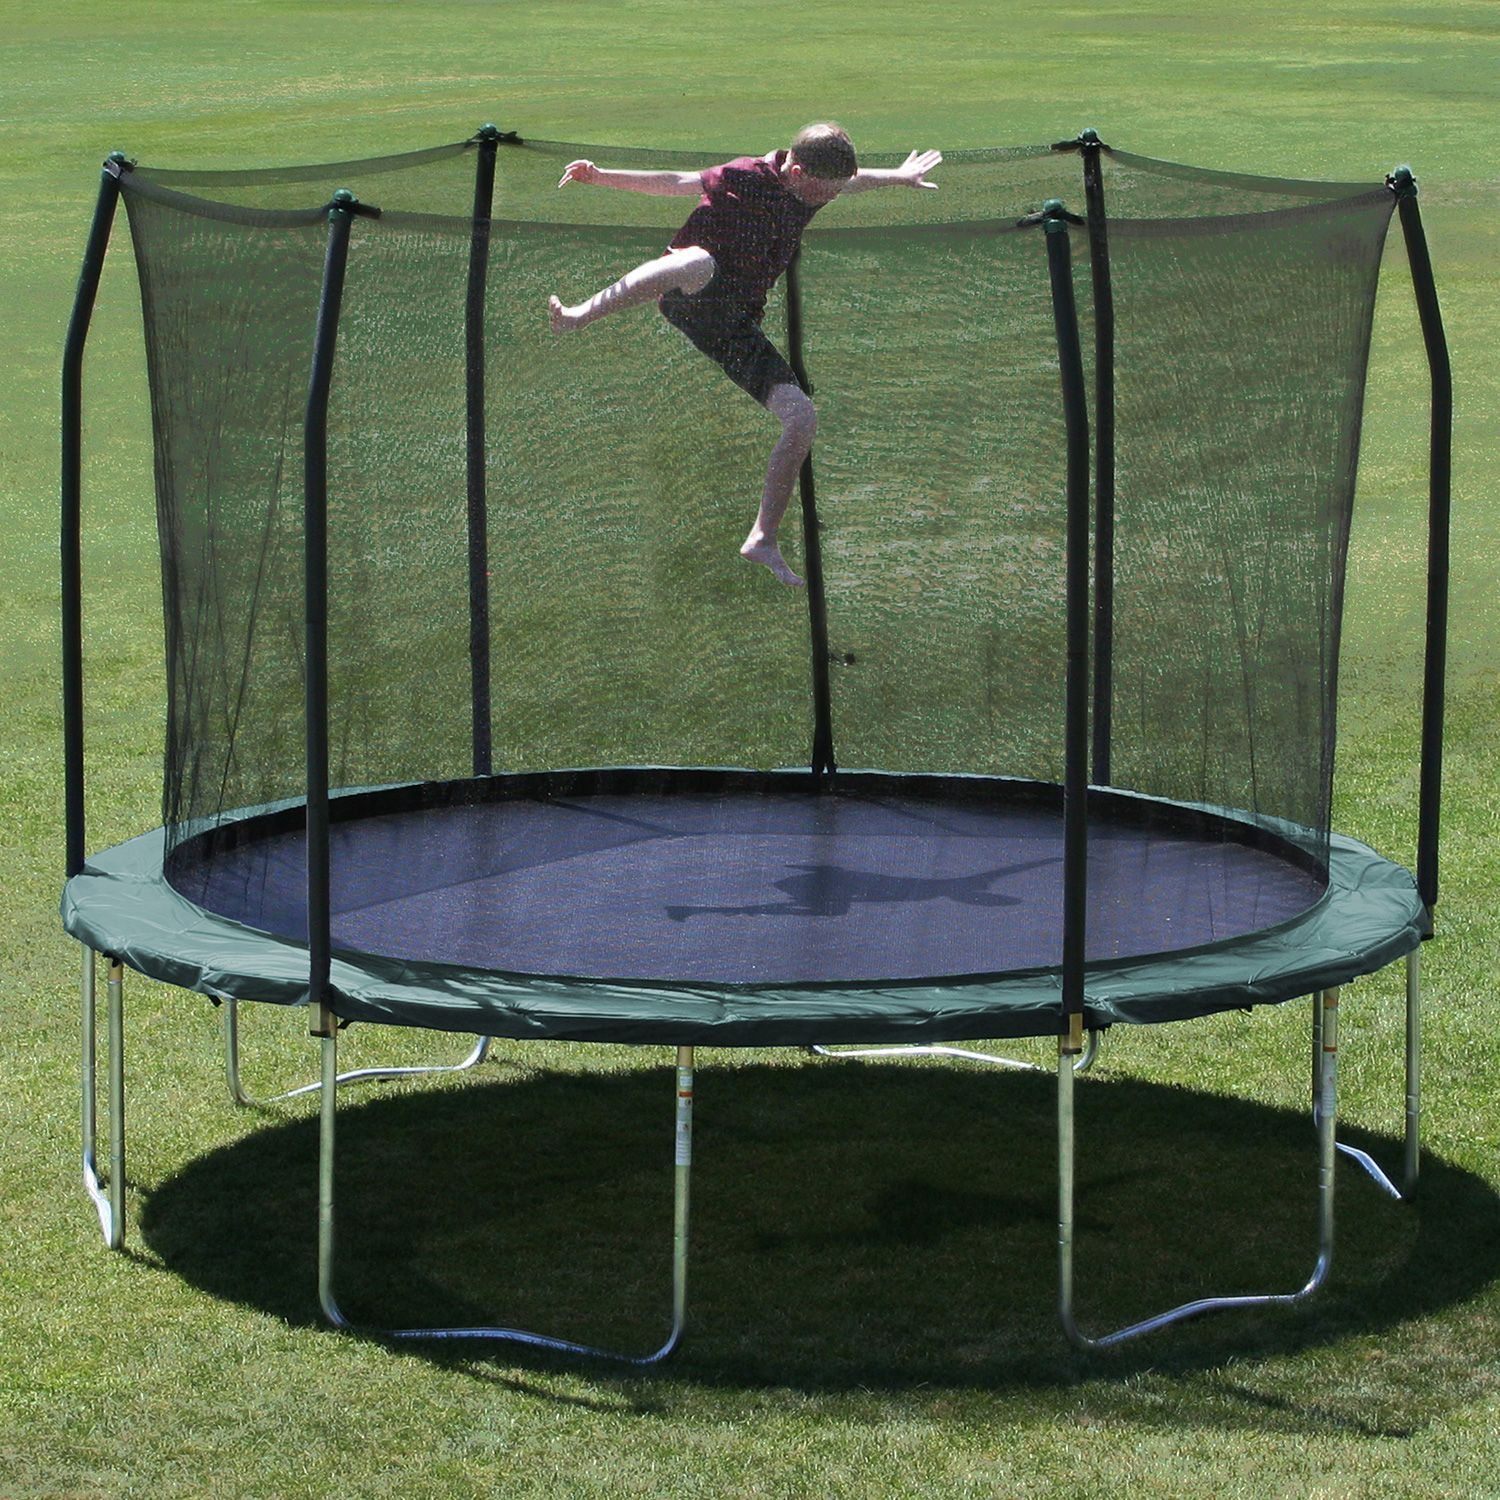 Skywalker Trampolines 12' Round Trampoline And Enclosure